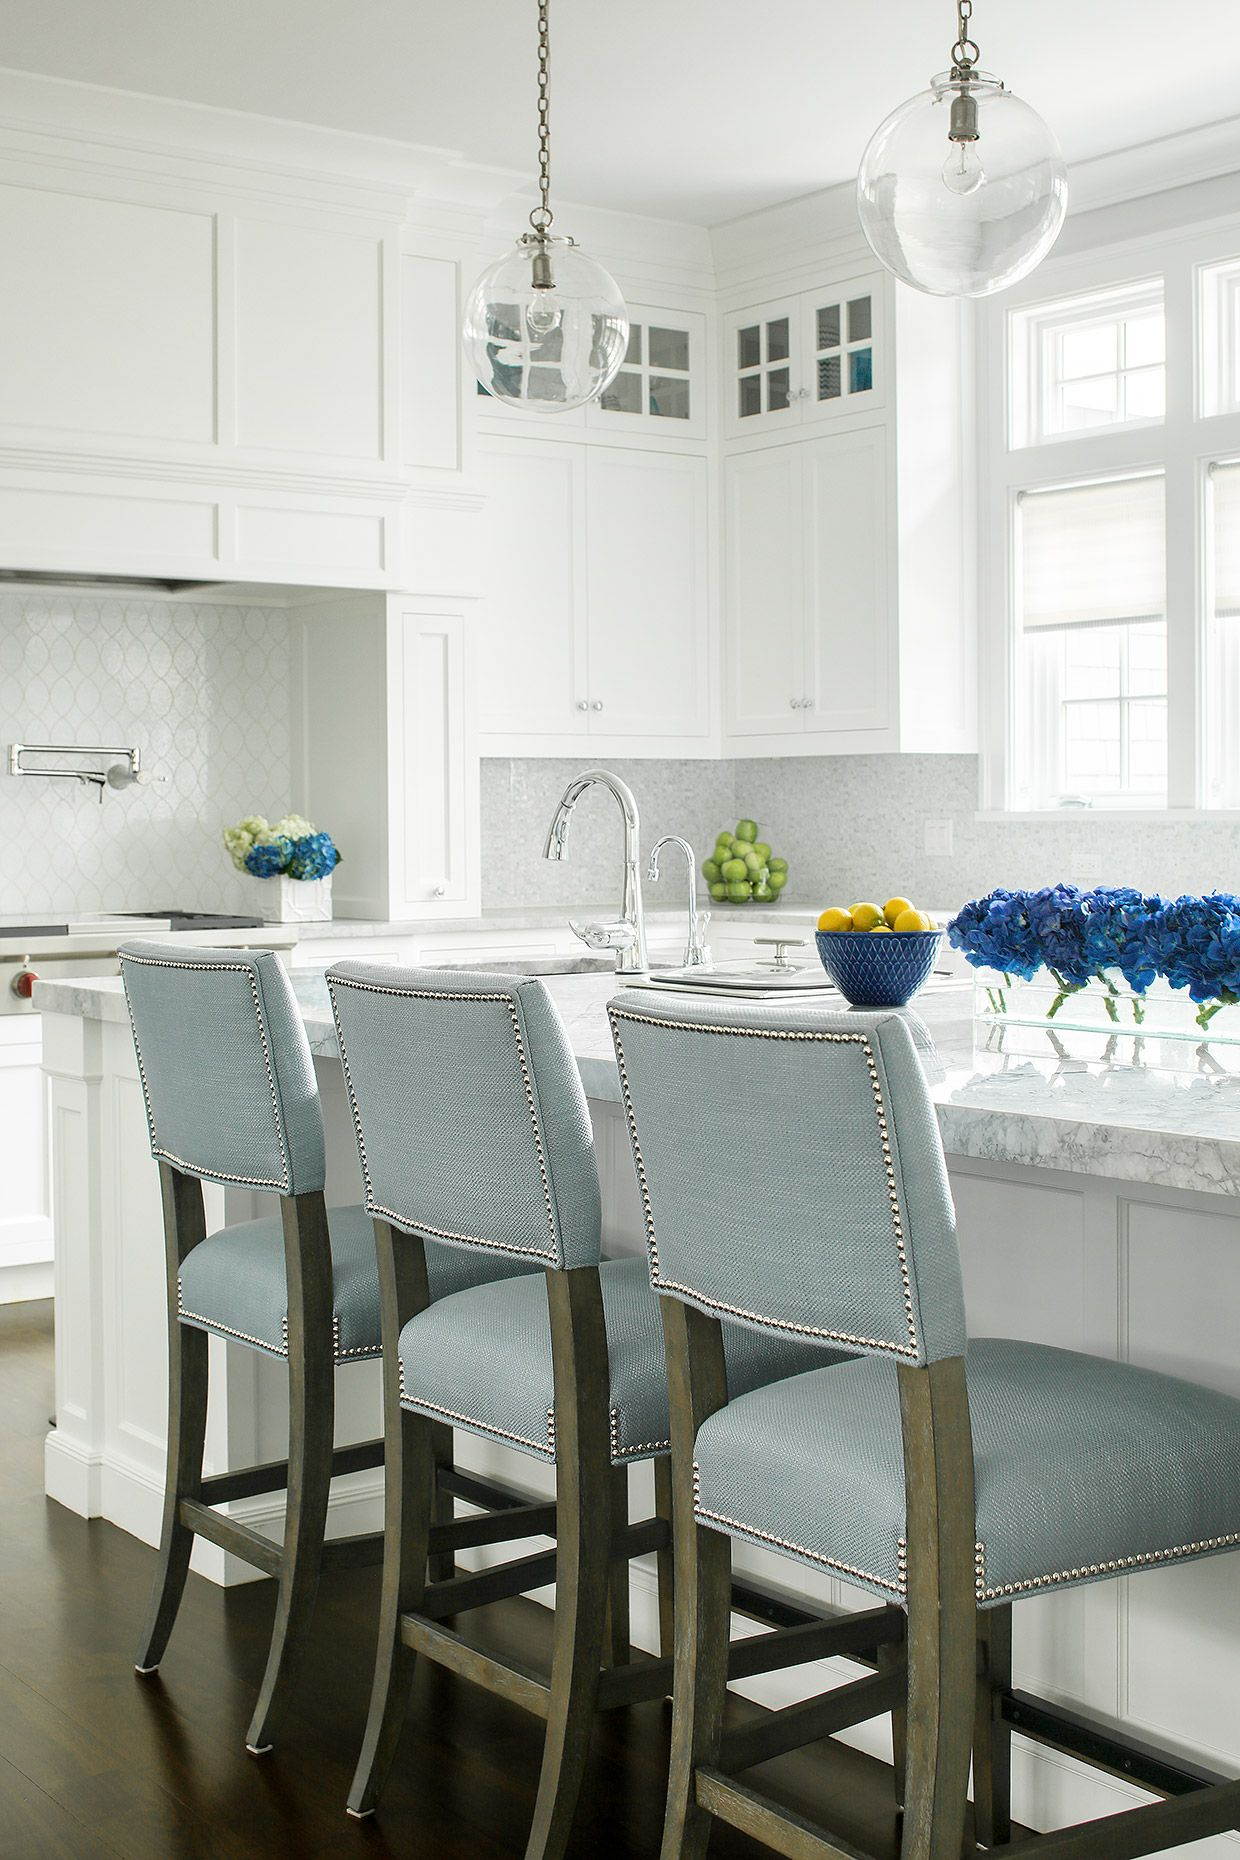 White On White Kitchen Baby Blue Pop Jem Cabinetry Stools